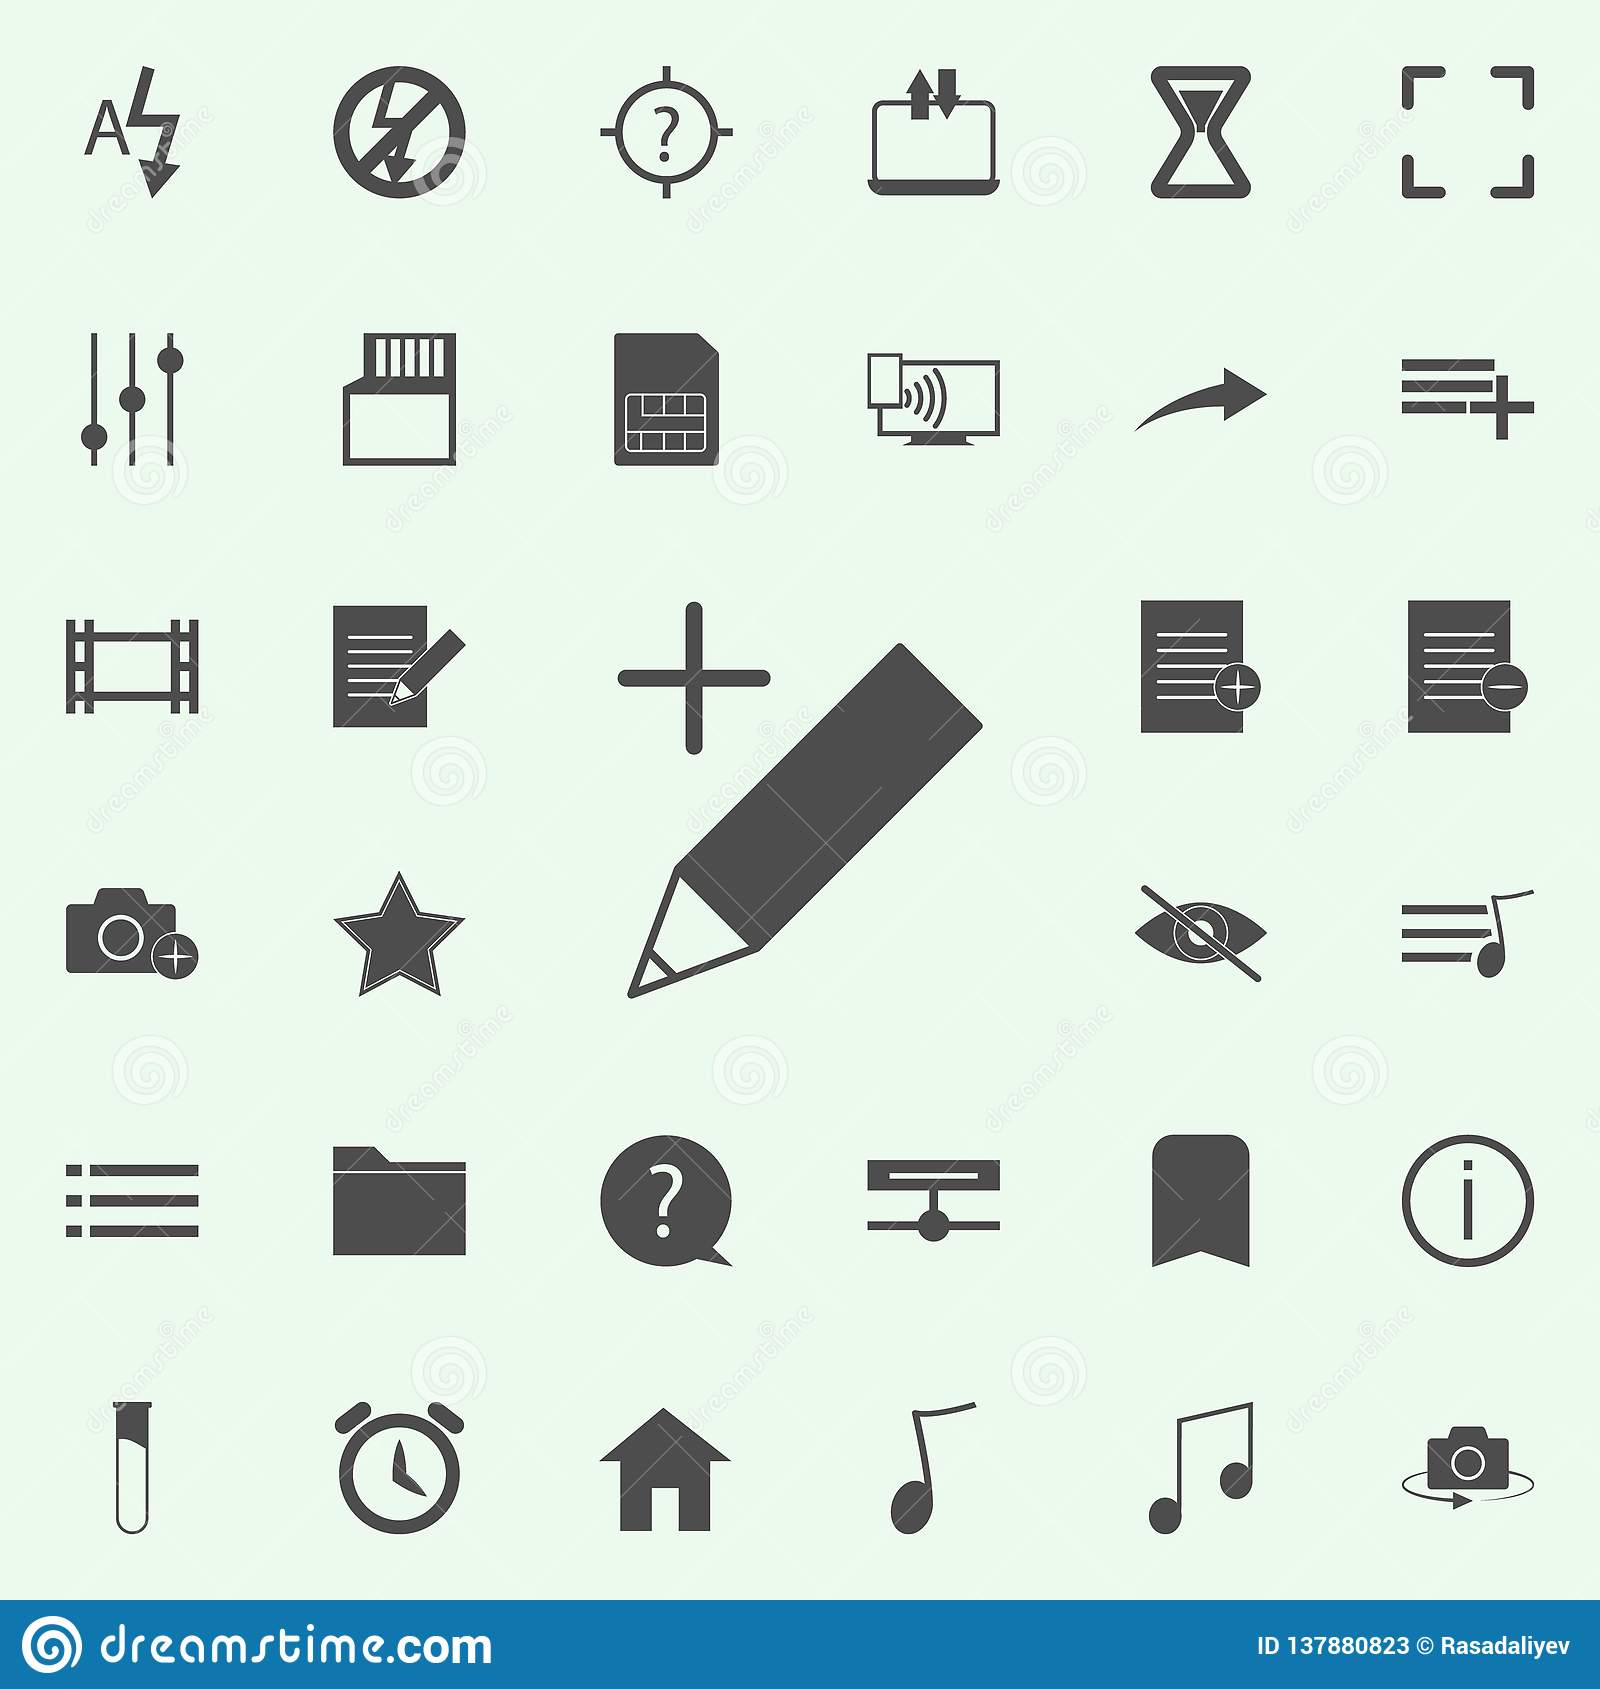 pen plus icon. web icons universal set for web and mobile